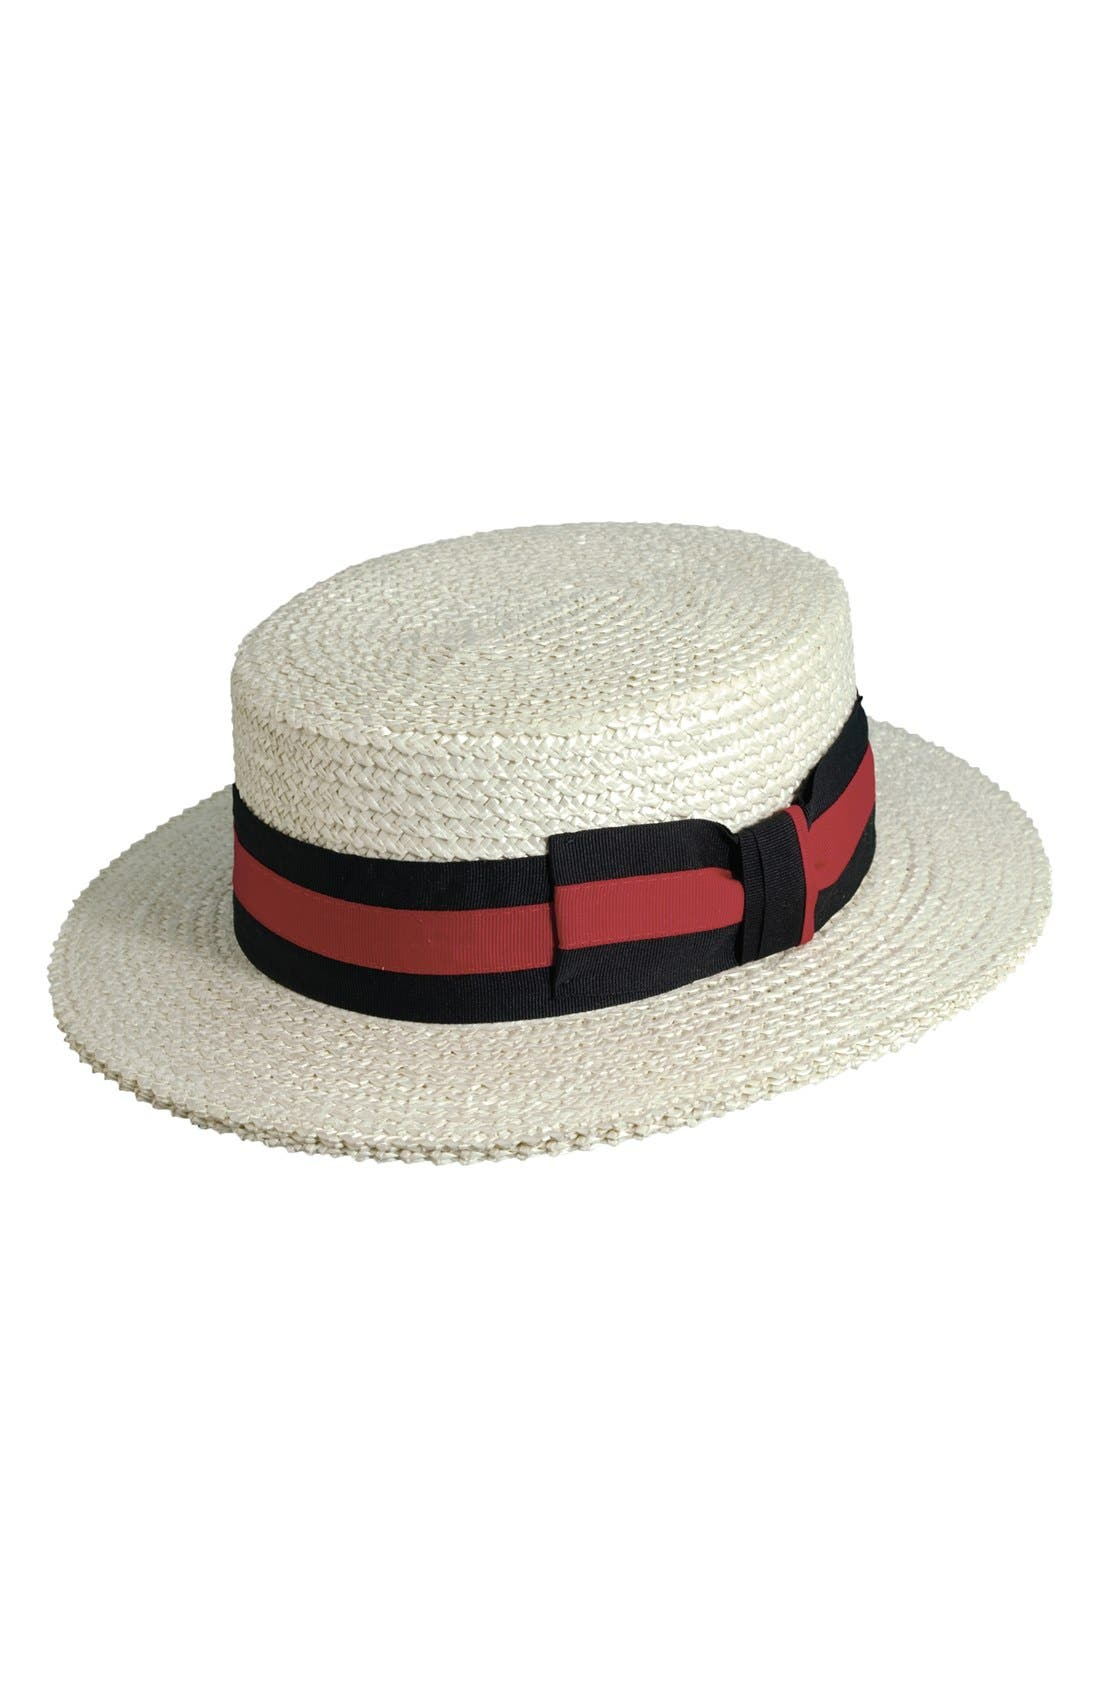 SCALA Straw Boater Hat